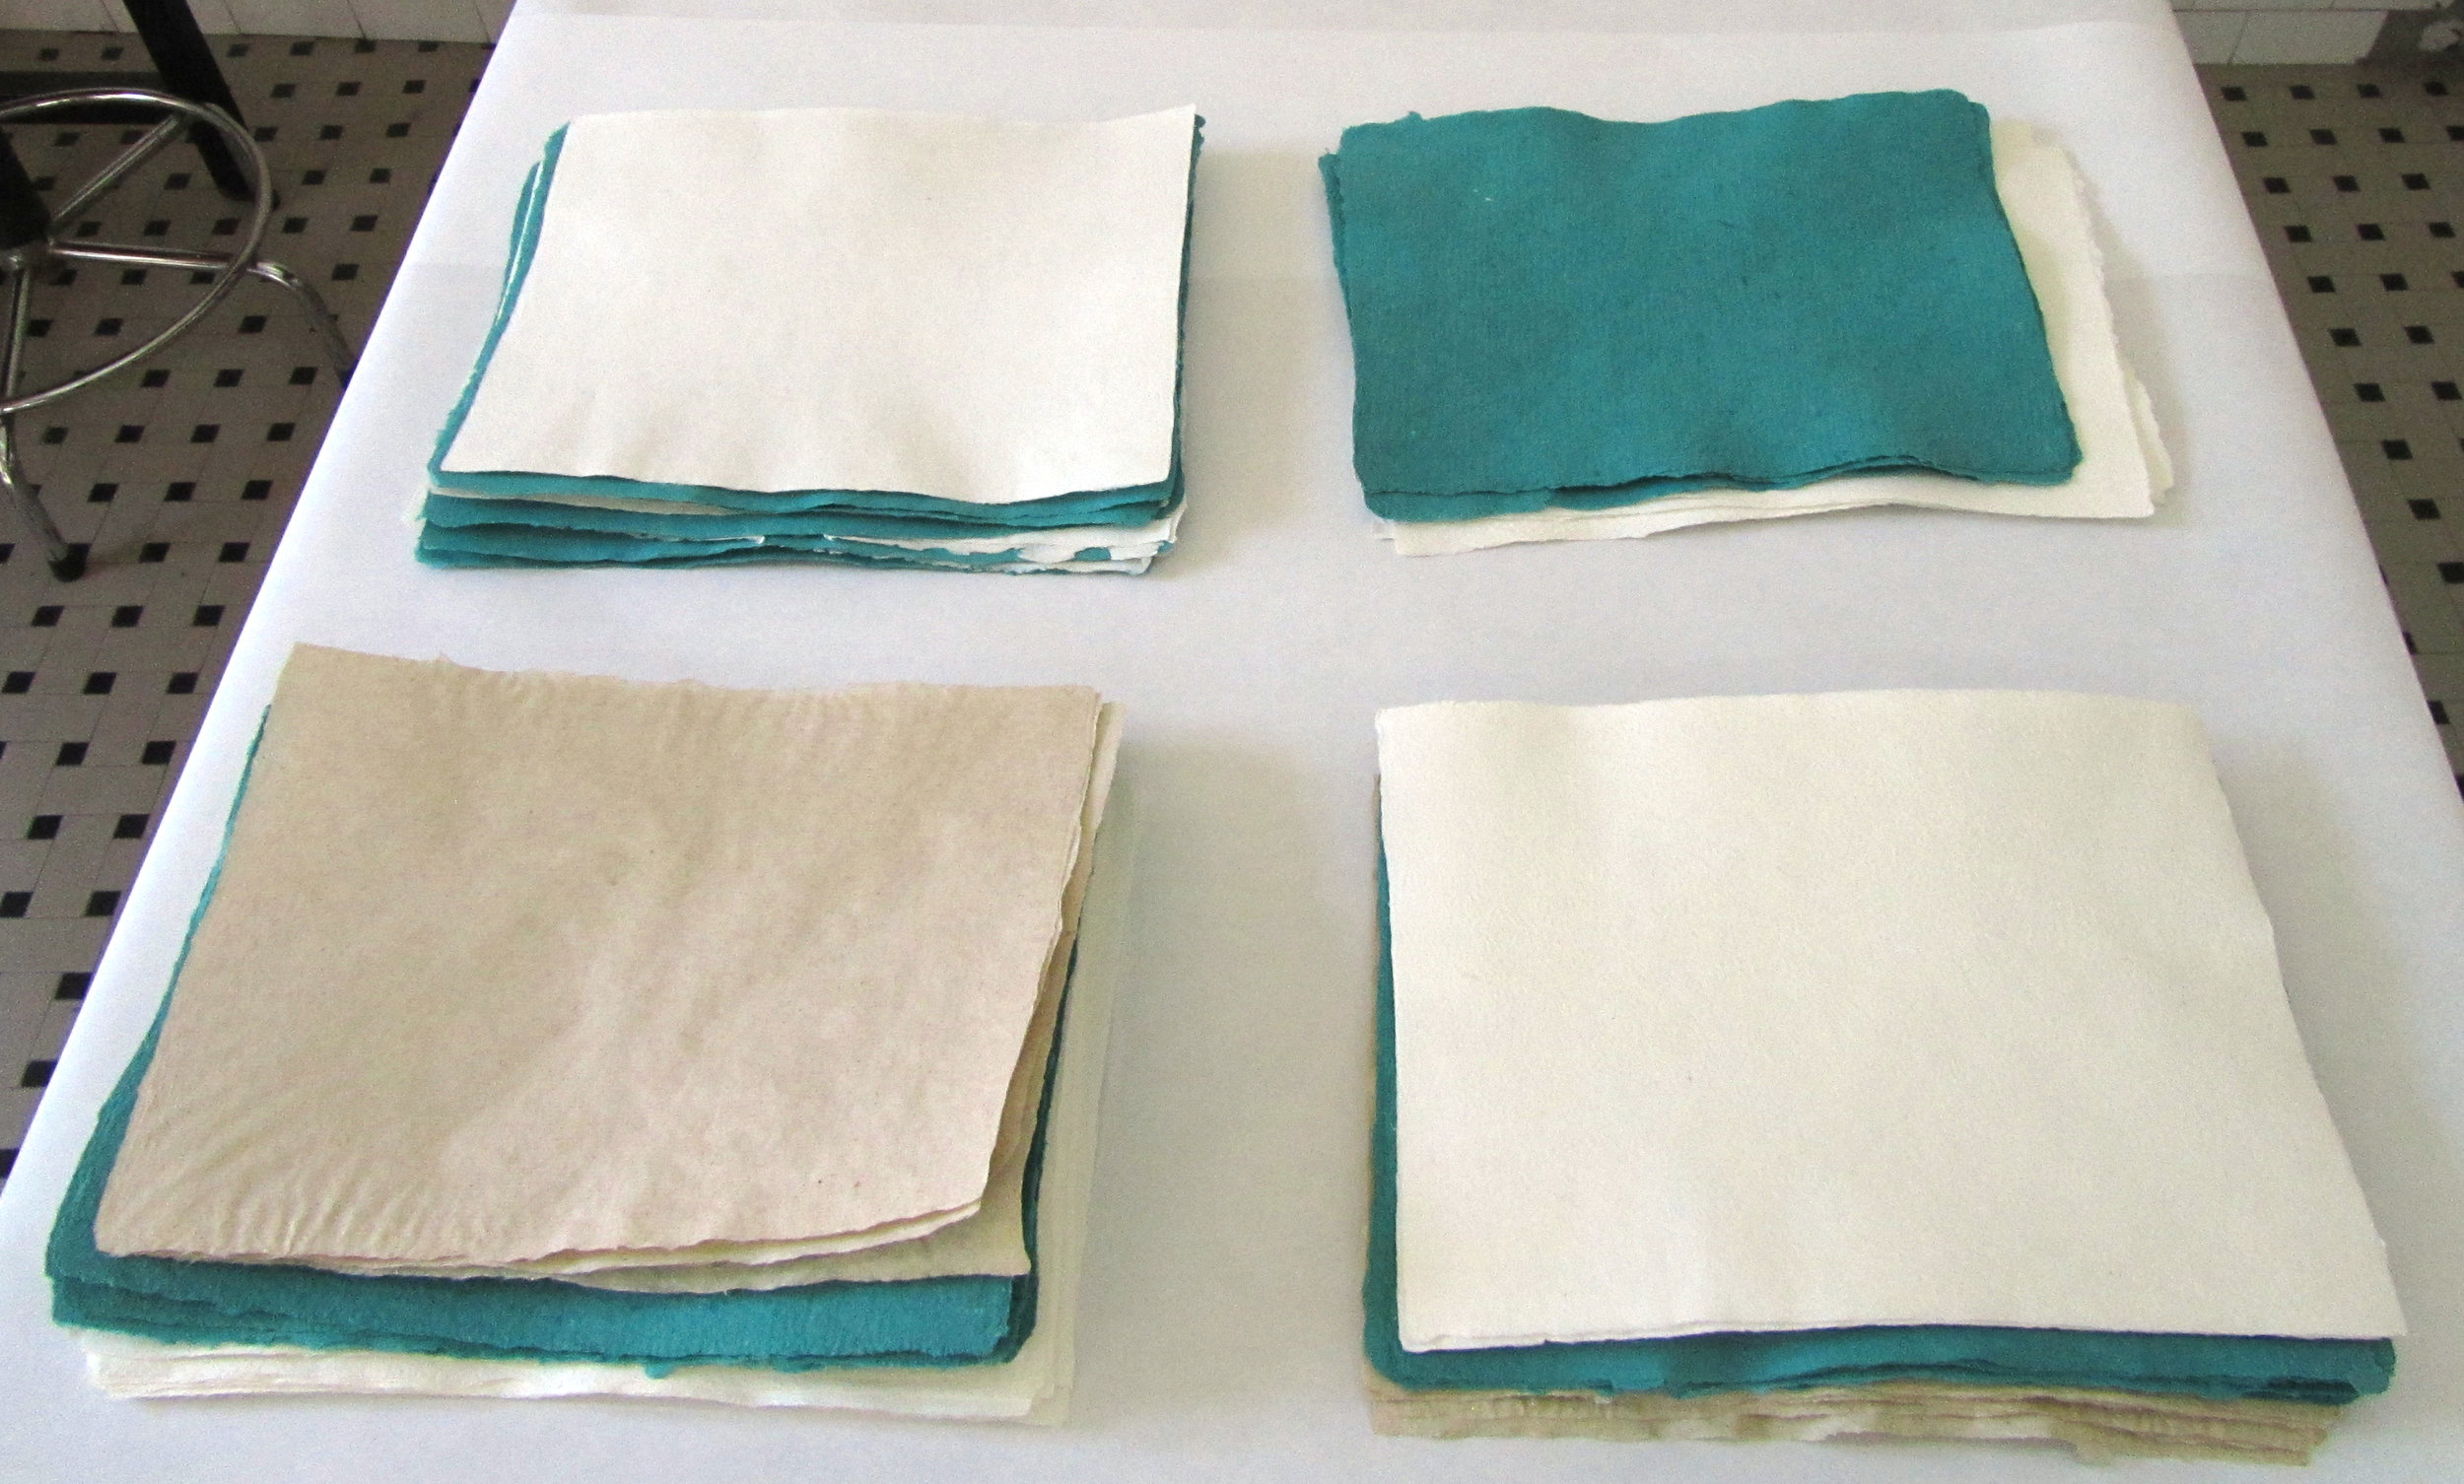 Handmade paper from cotton and flax.